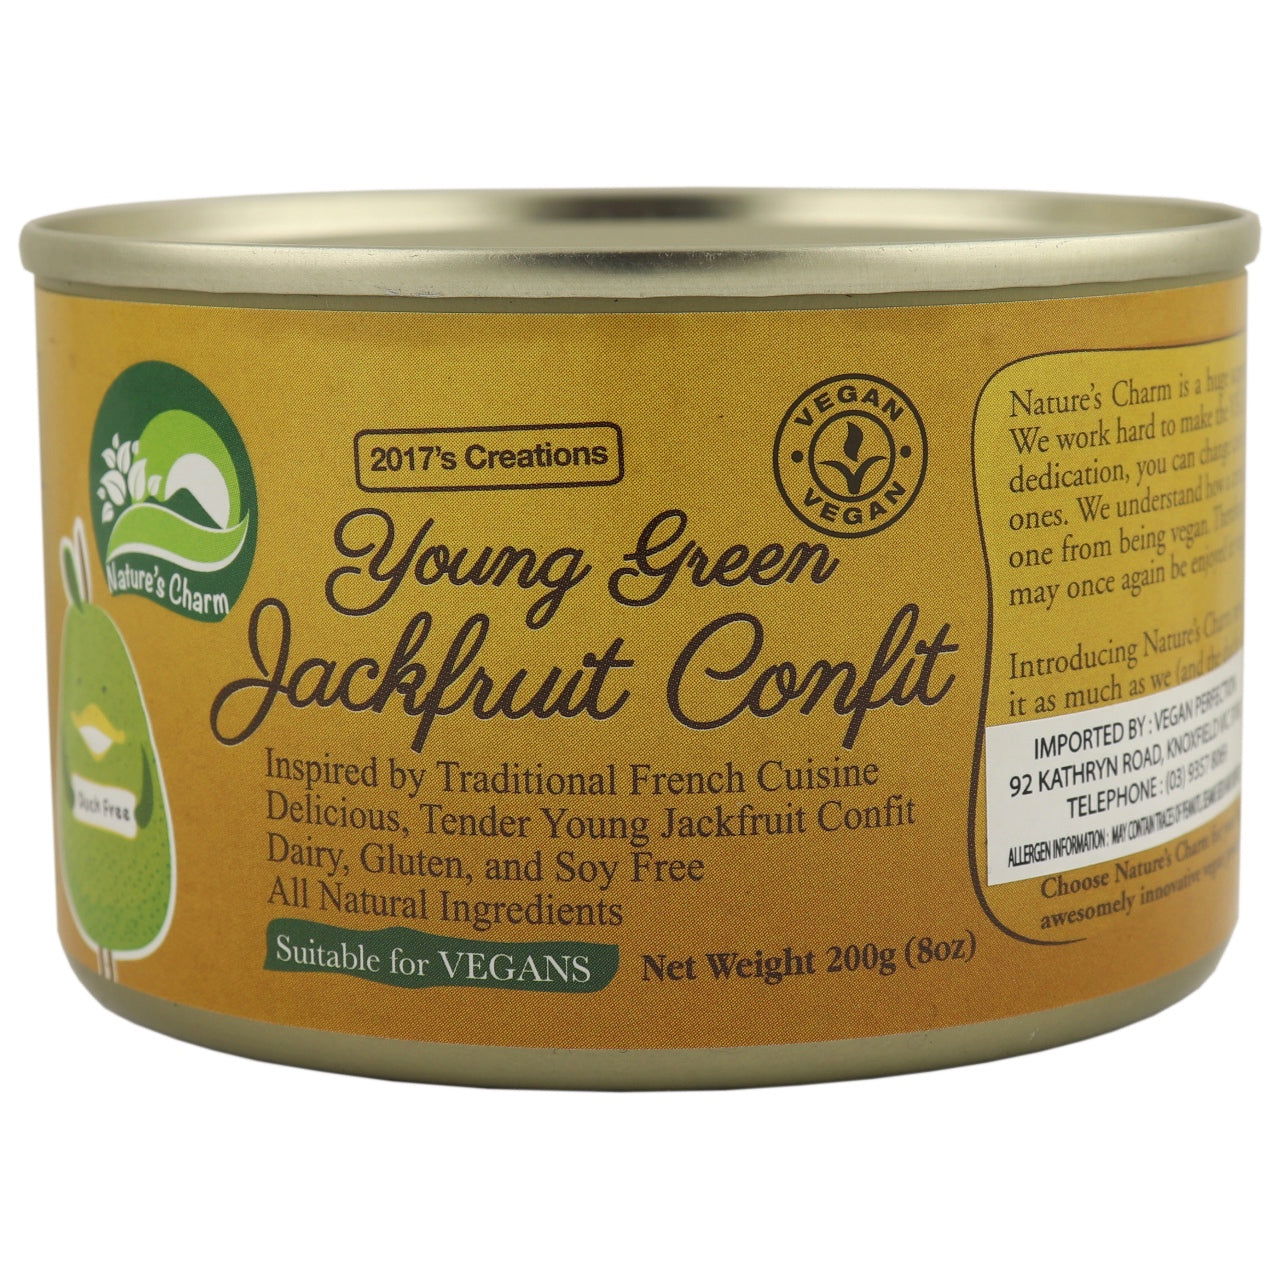 Nature's Charm Young Green Jackfruit Confit